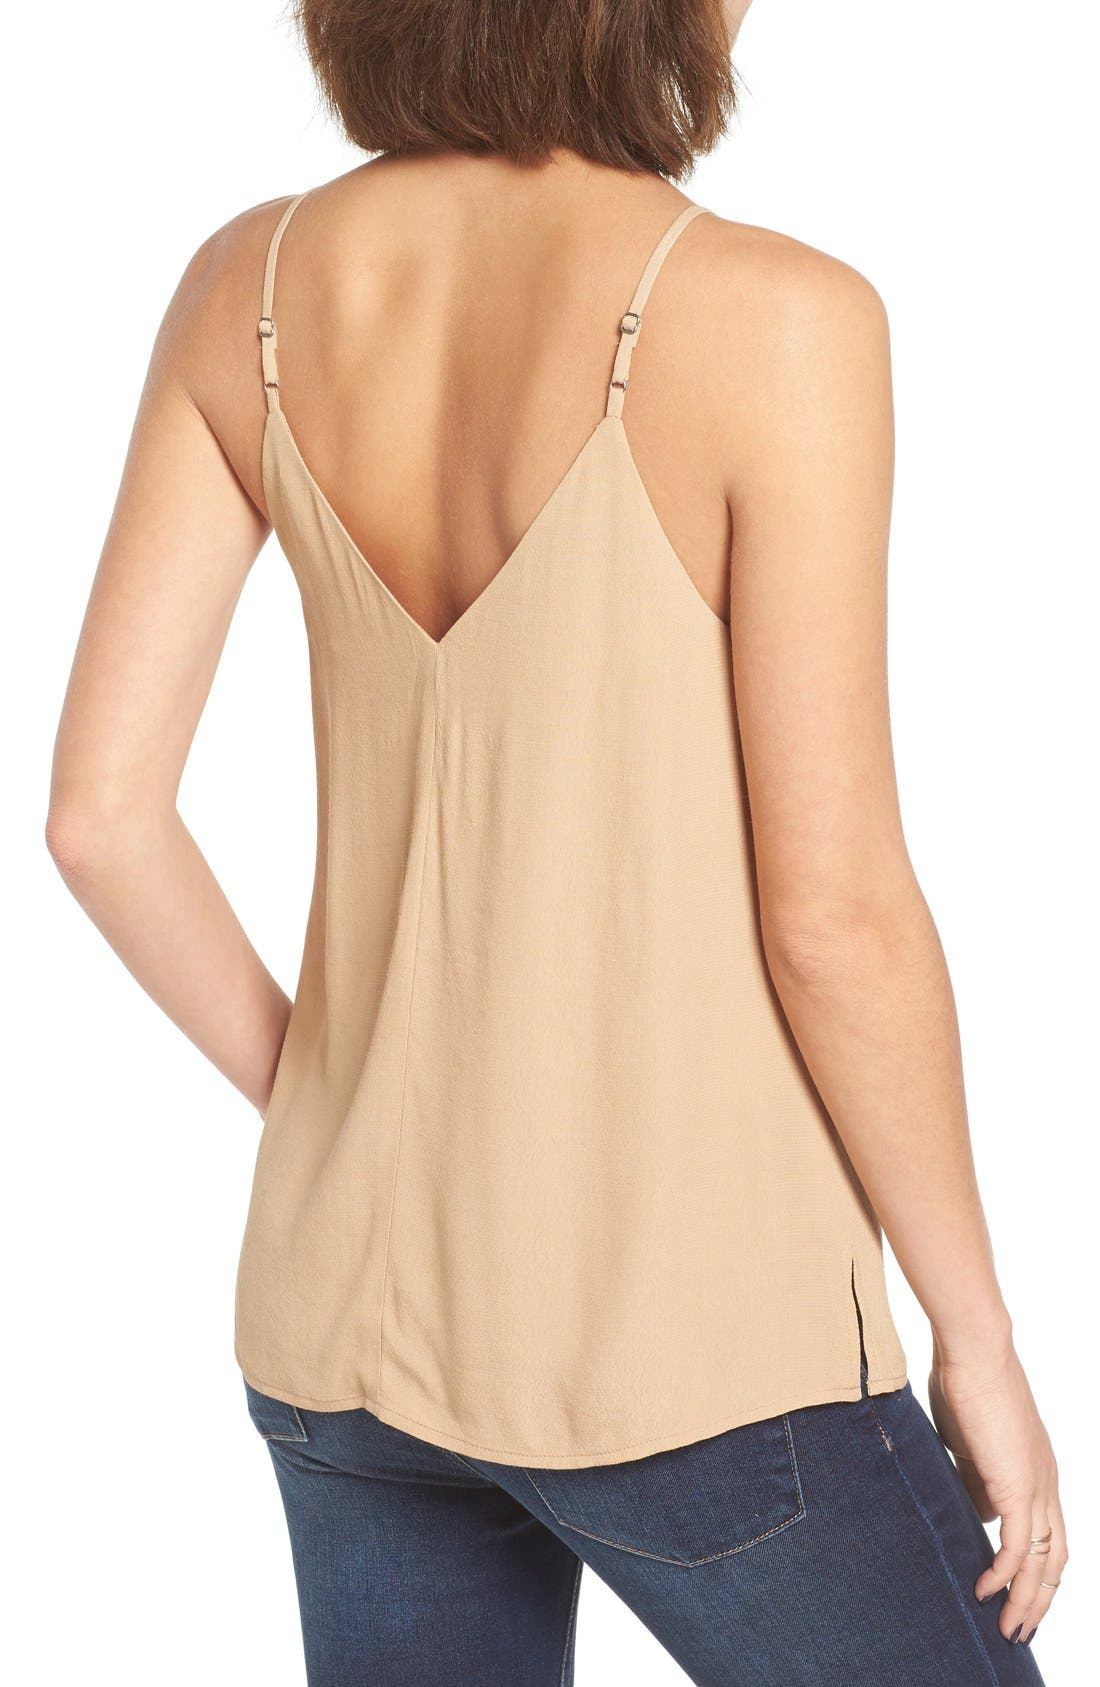 Double V Camisole,                             Alternate thumbnail 2, color,                             Tan Toffee